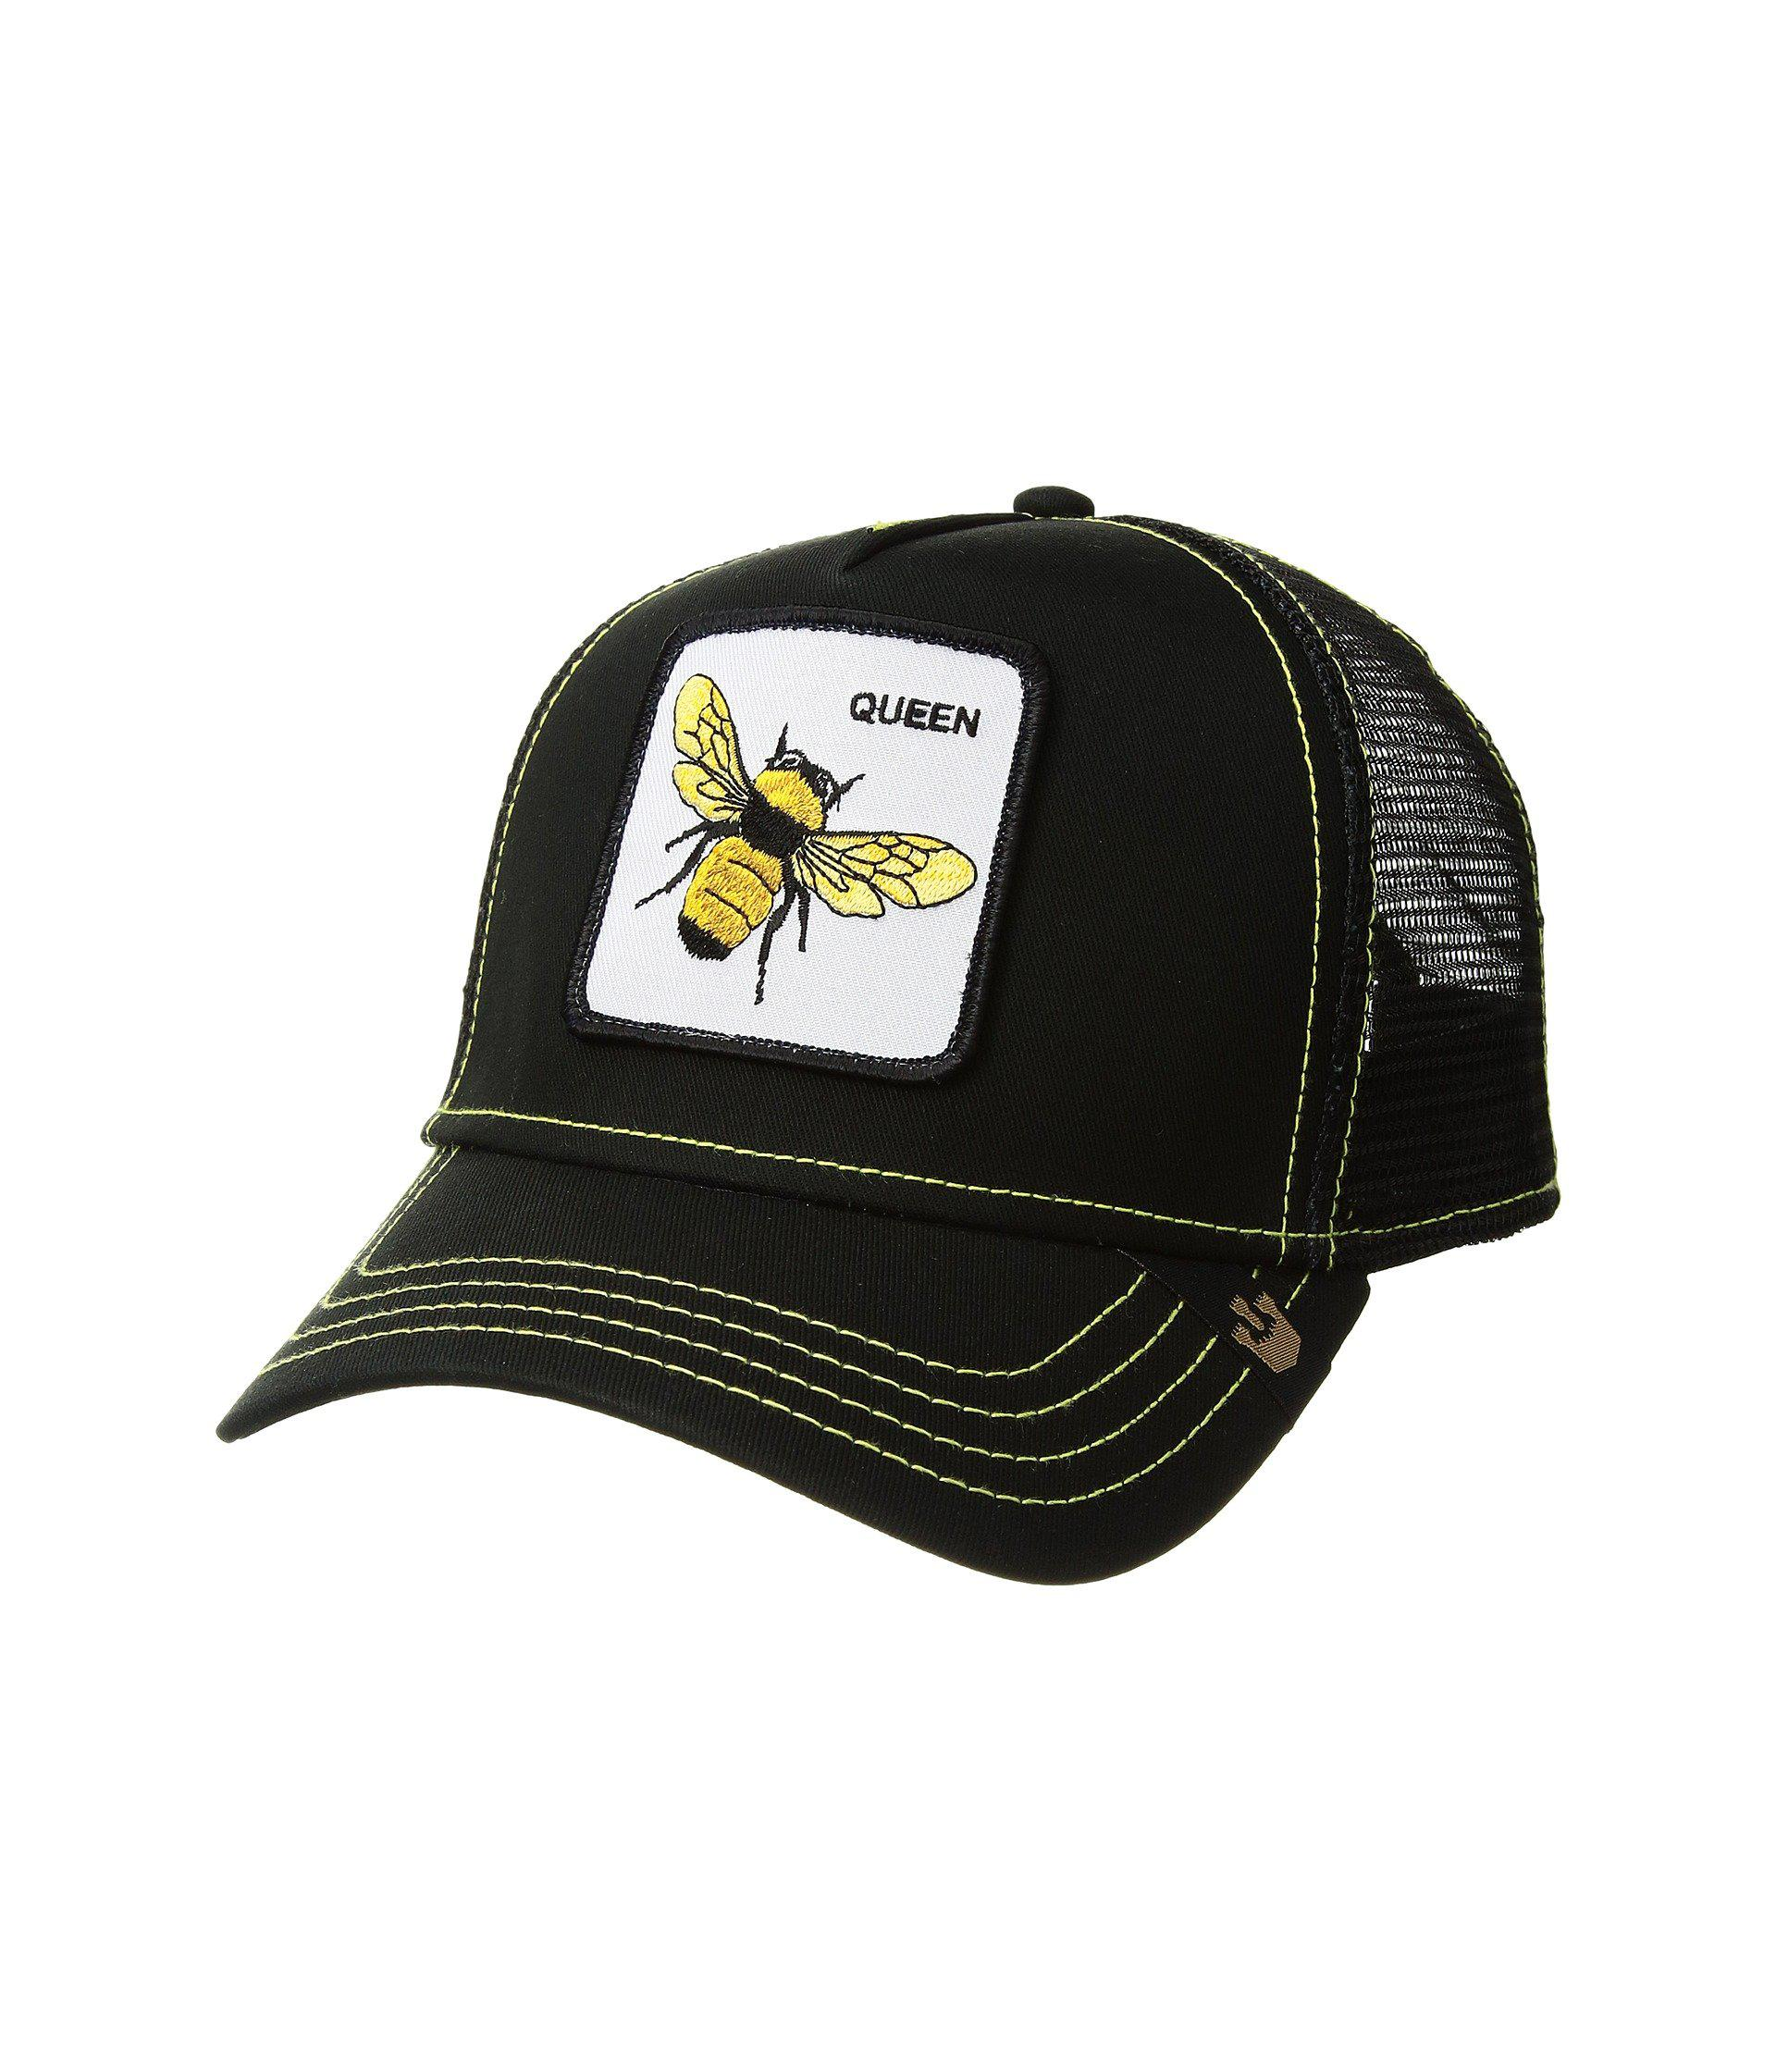 Goorin Bros Black One Size Hat NEU Men/'s Queen Bee Animal Farm Trucker Cap